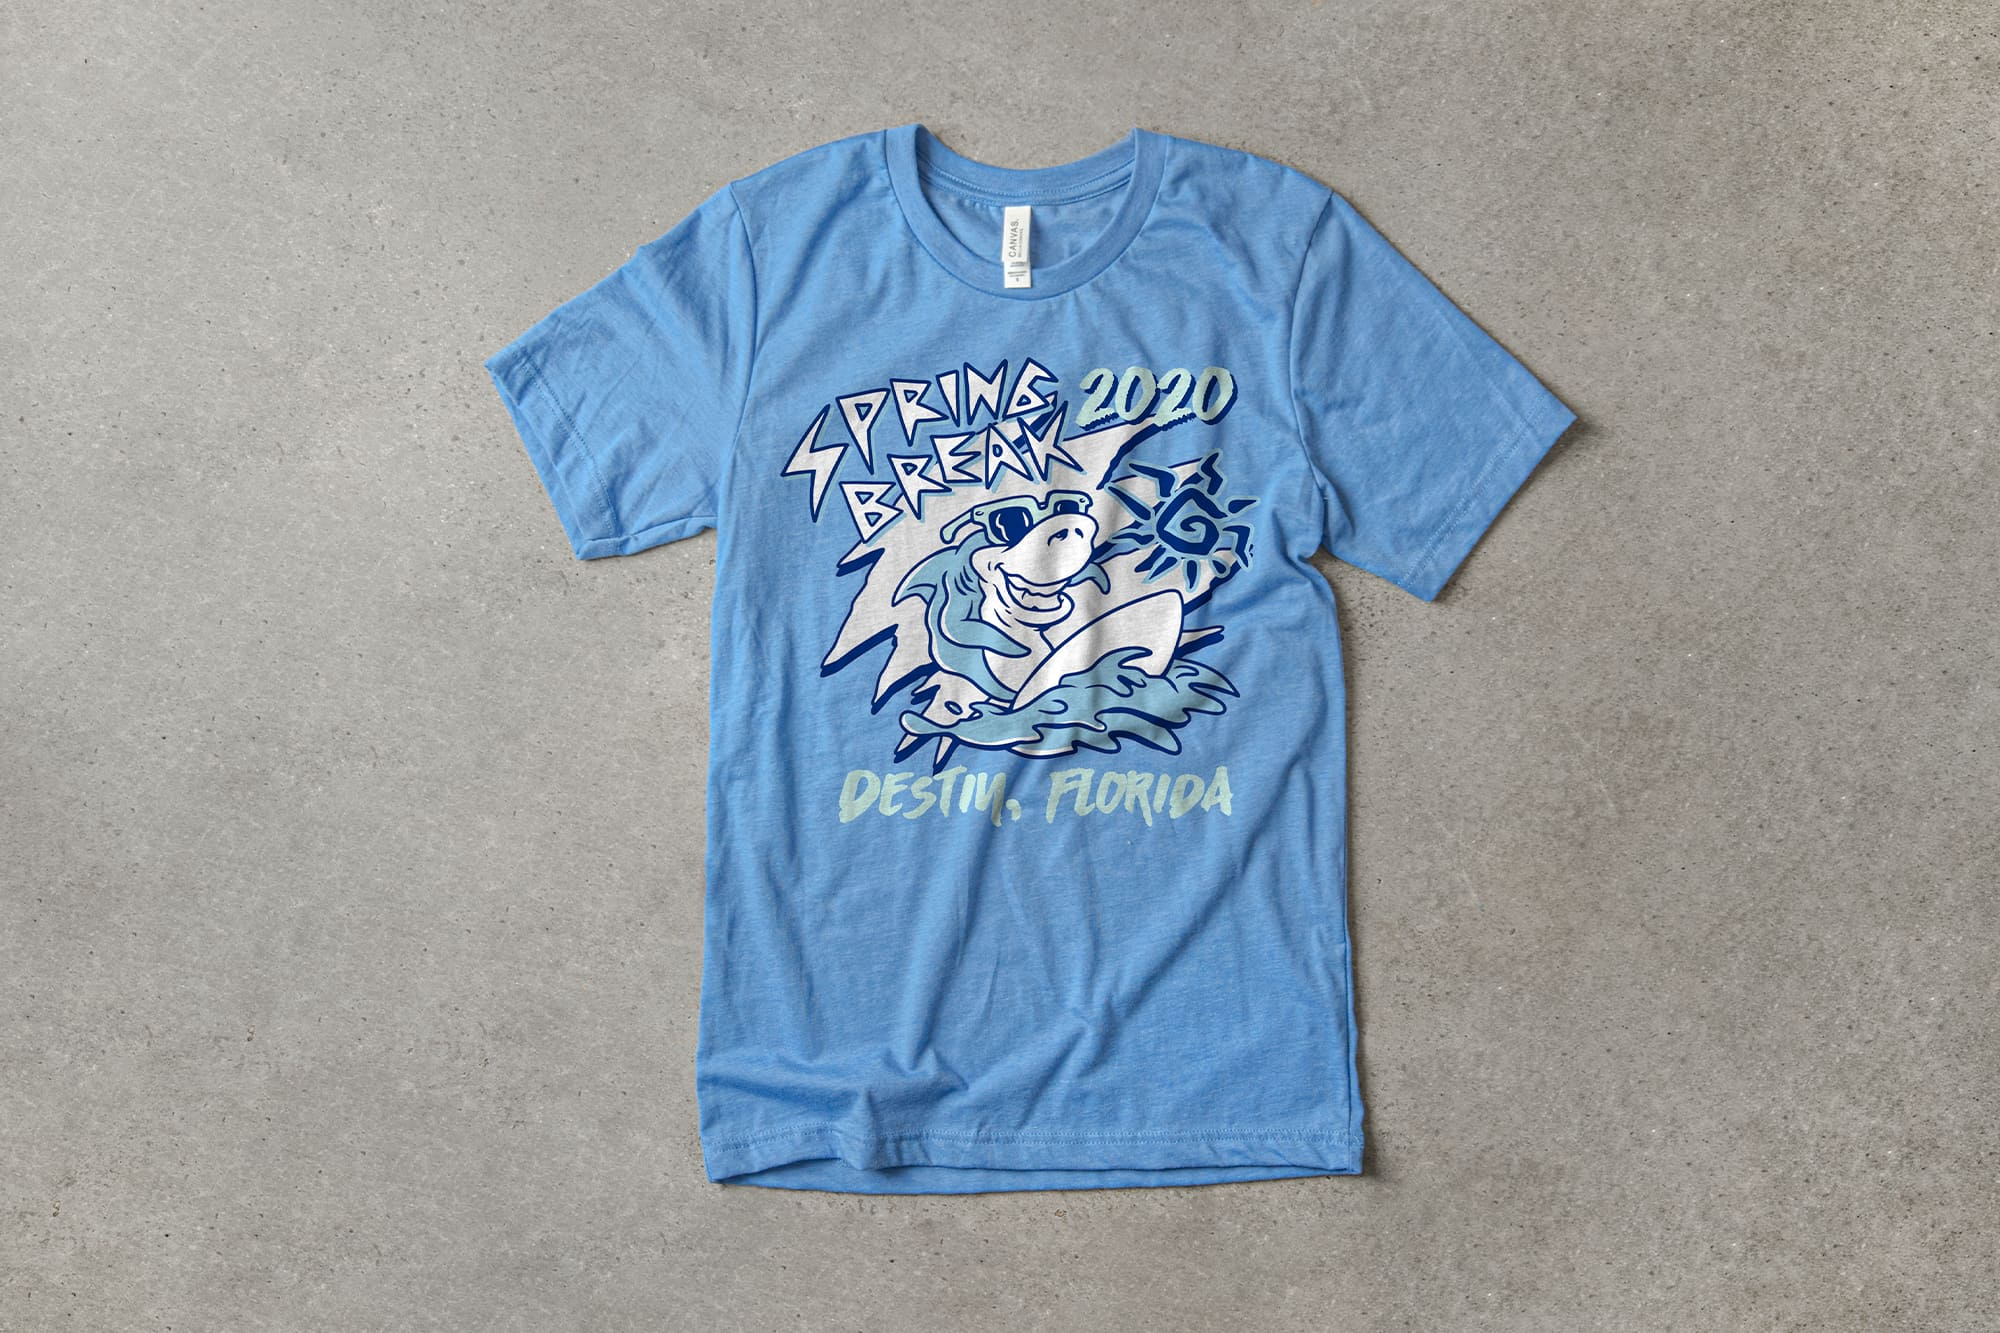 Example of t-shirt design using monochromatic colors.